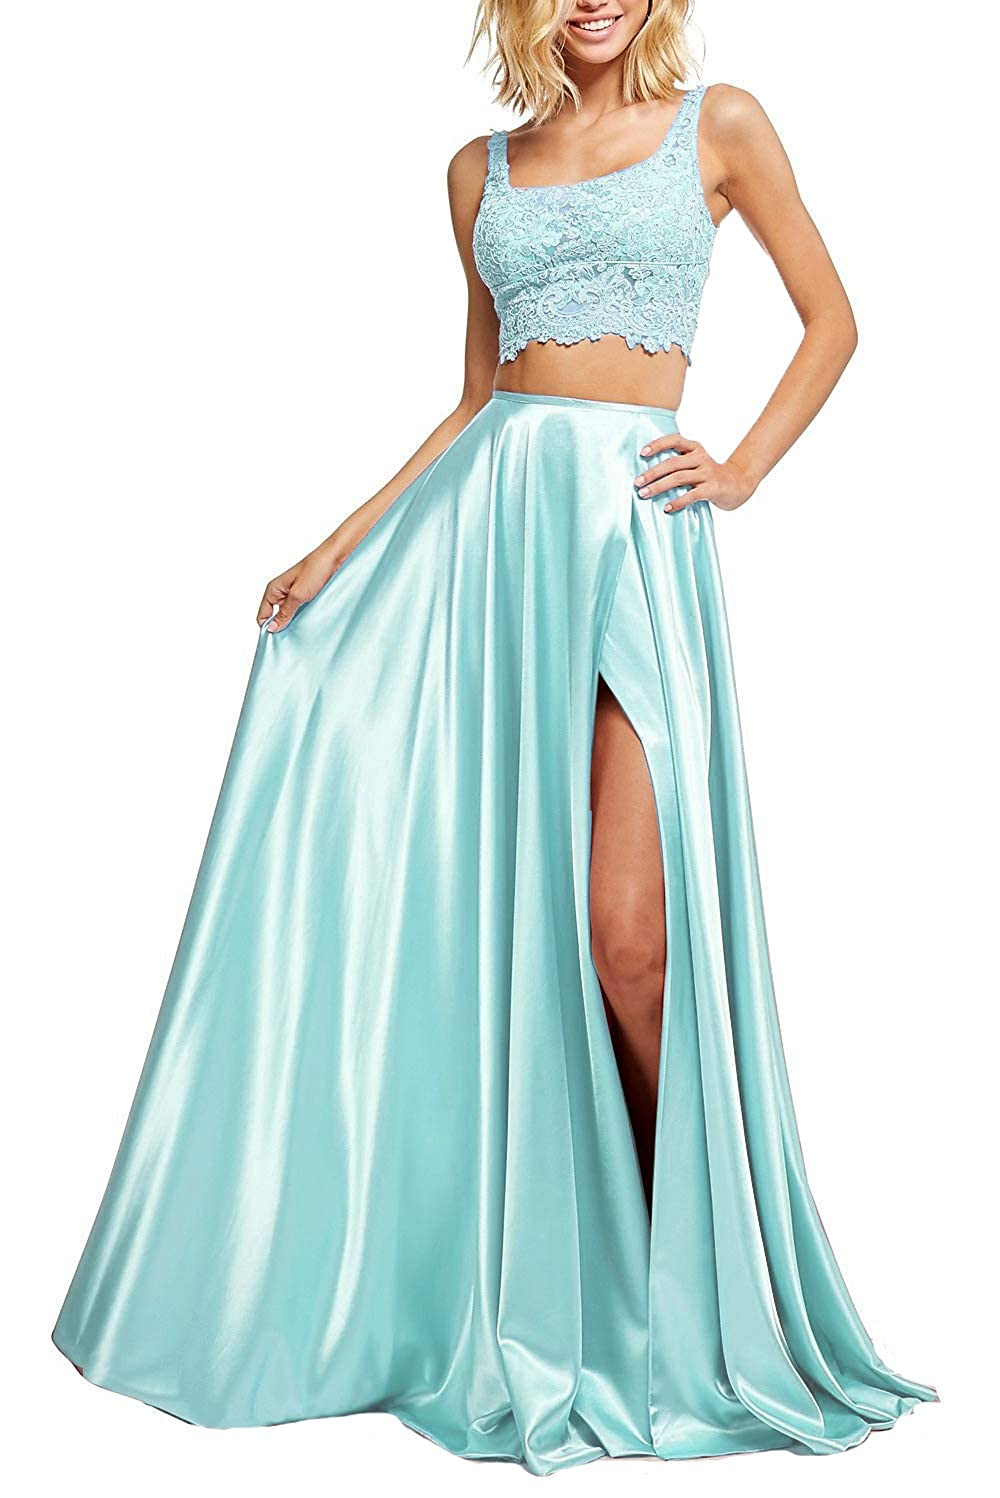 Baby bluee YMSHA Women's Lace Top Prom Dress TwoPiece Long Formal Evening Gowns Side Slit with Pockets XY004